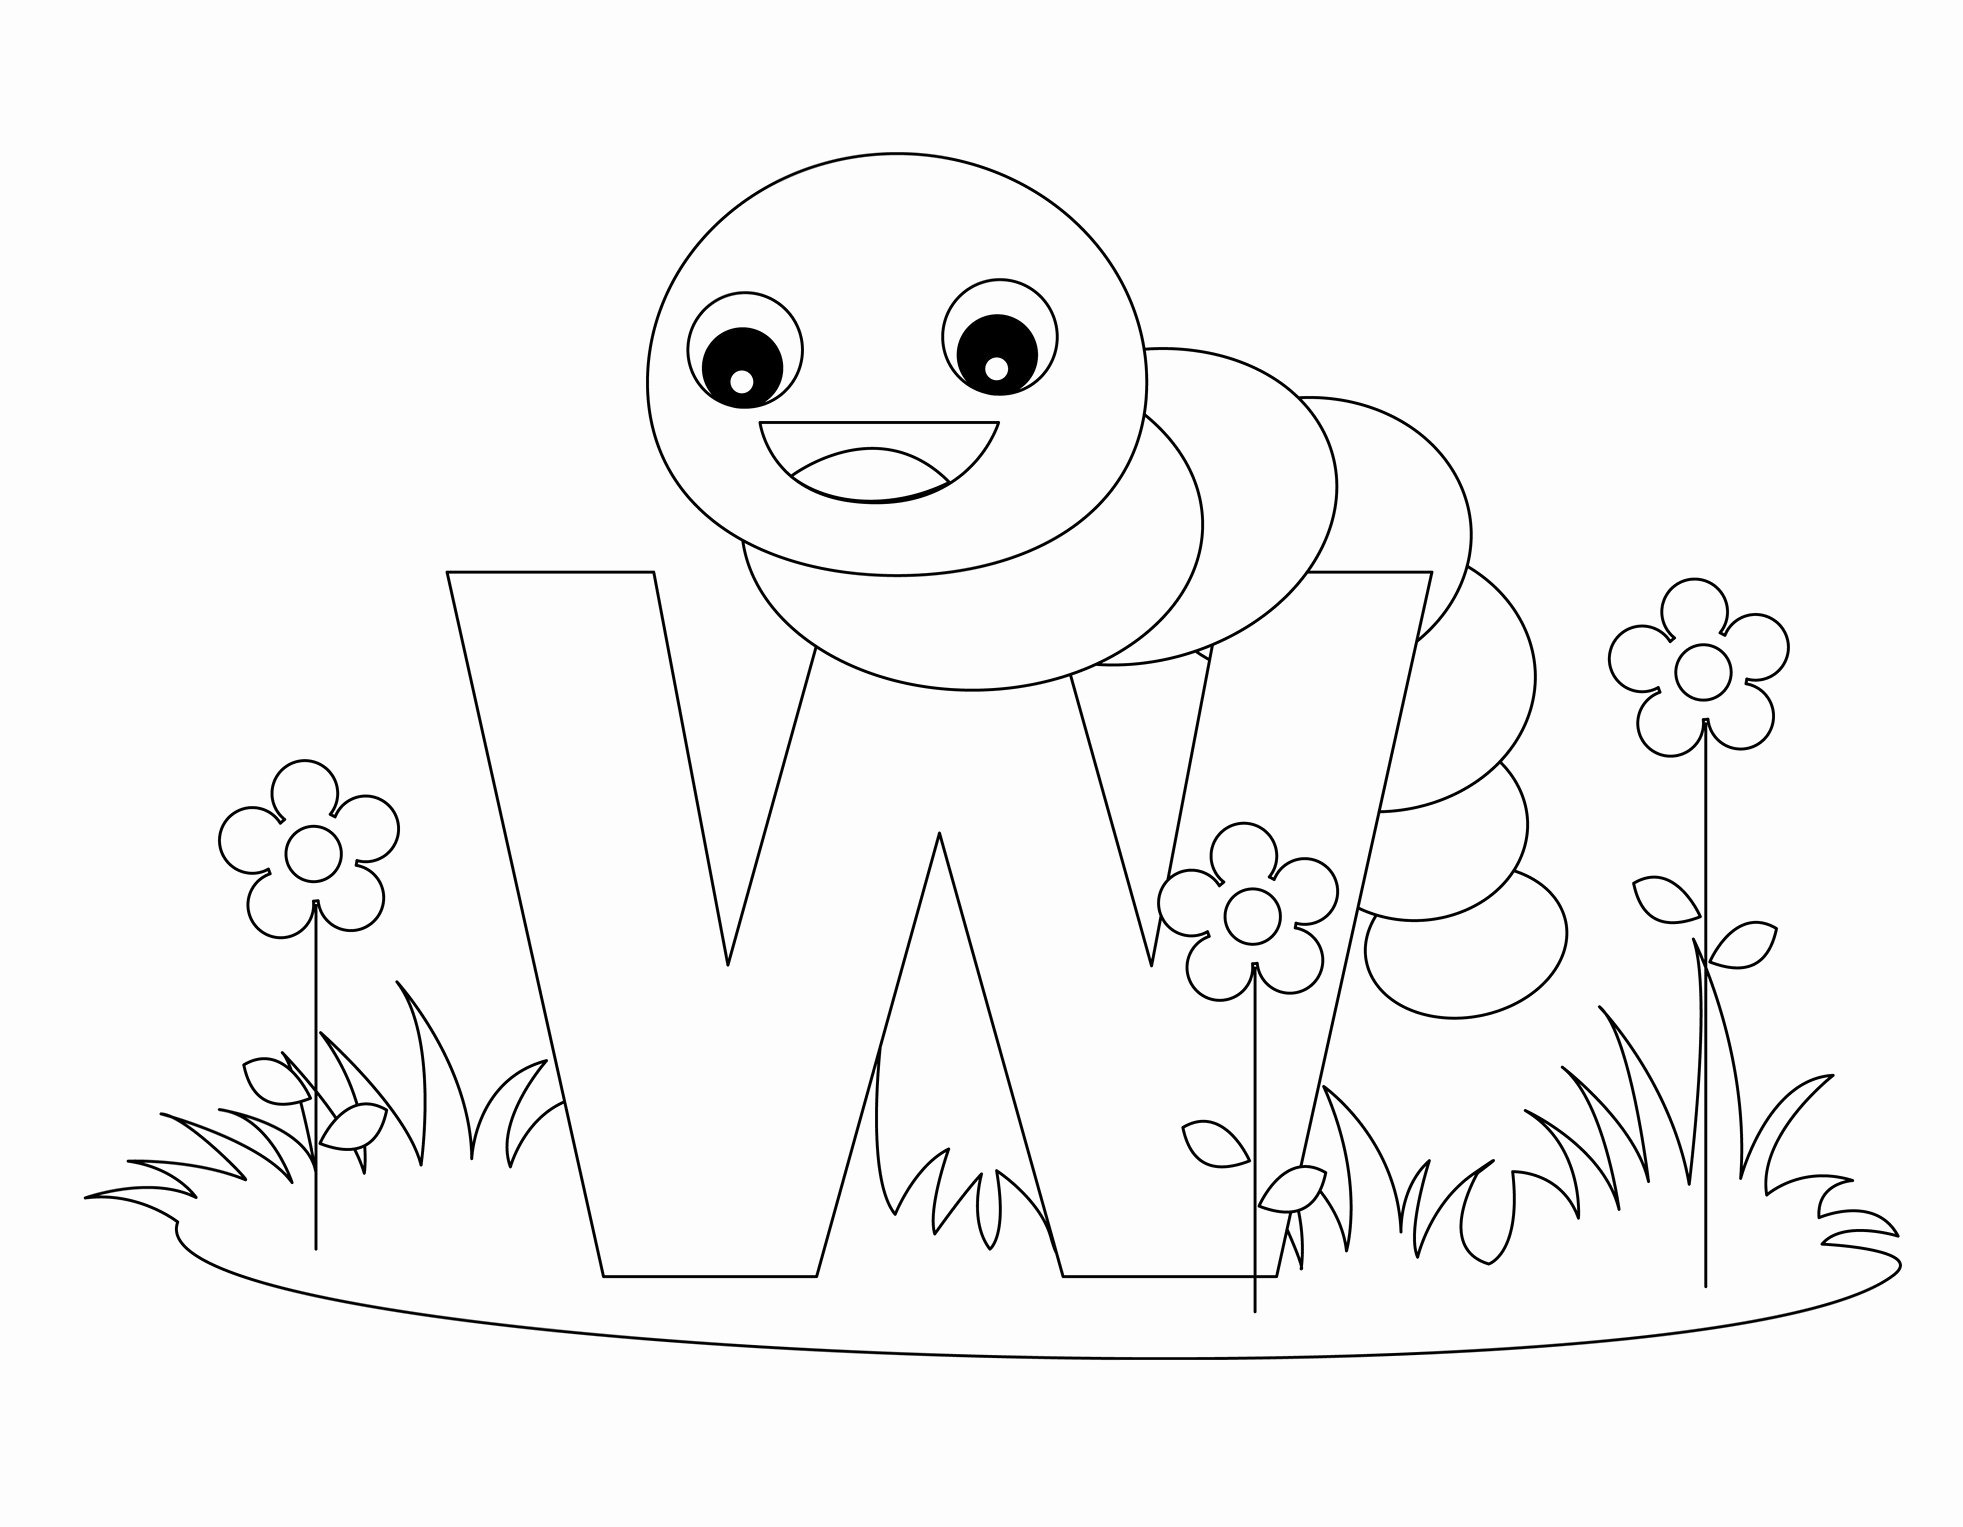 Alphabet Letters to Print Free Elegant Free Printable Alphabet Coloring Pages for Kids Best